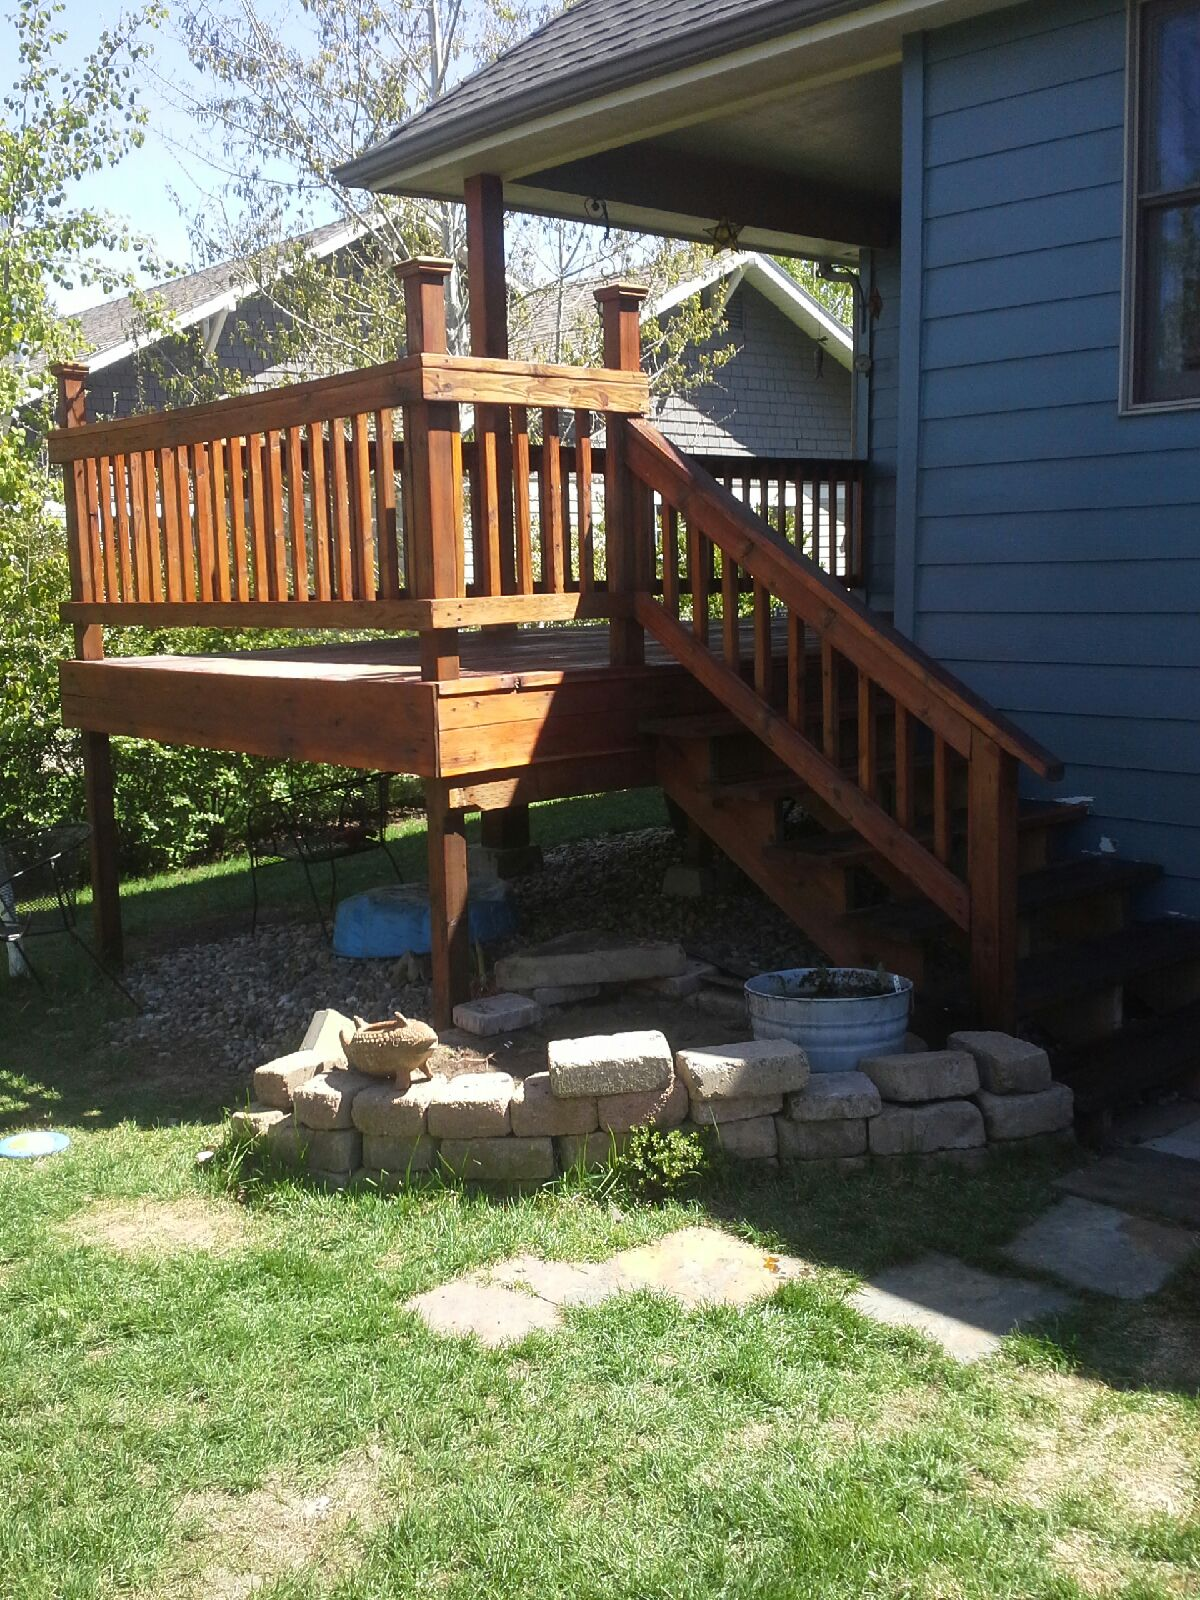 Myers landscaping and construction in bozeman mt 59718 for Myers lawn and garden